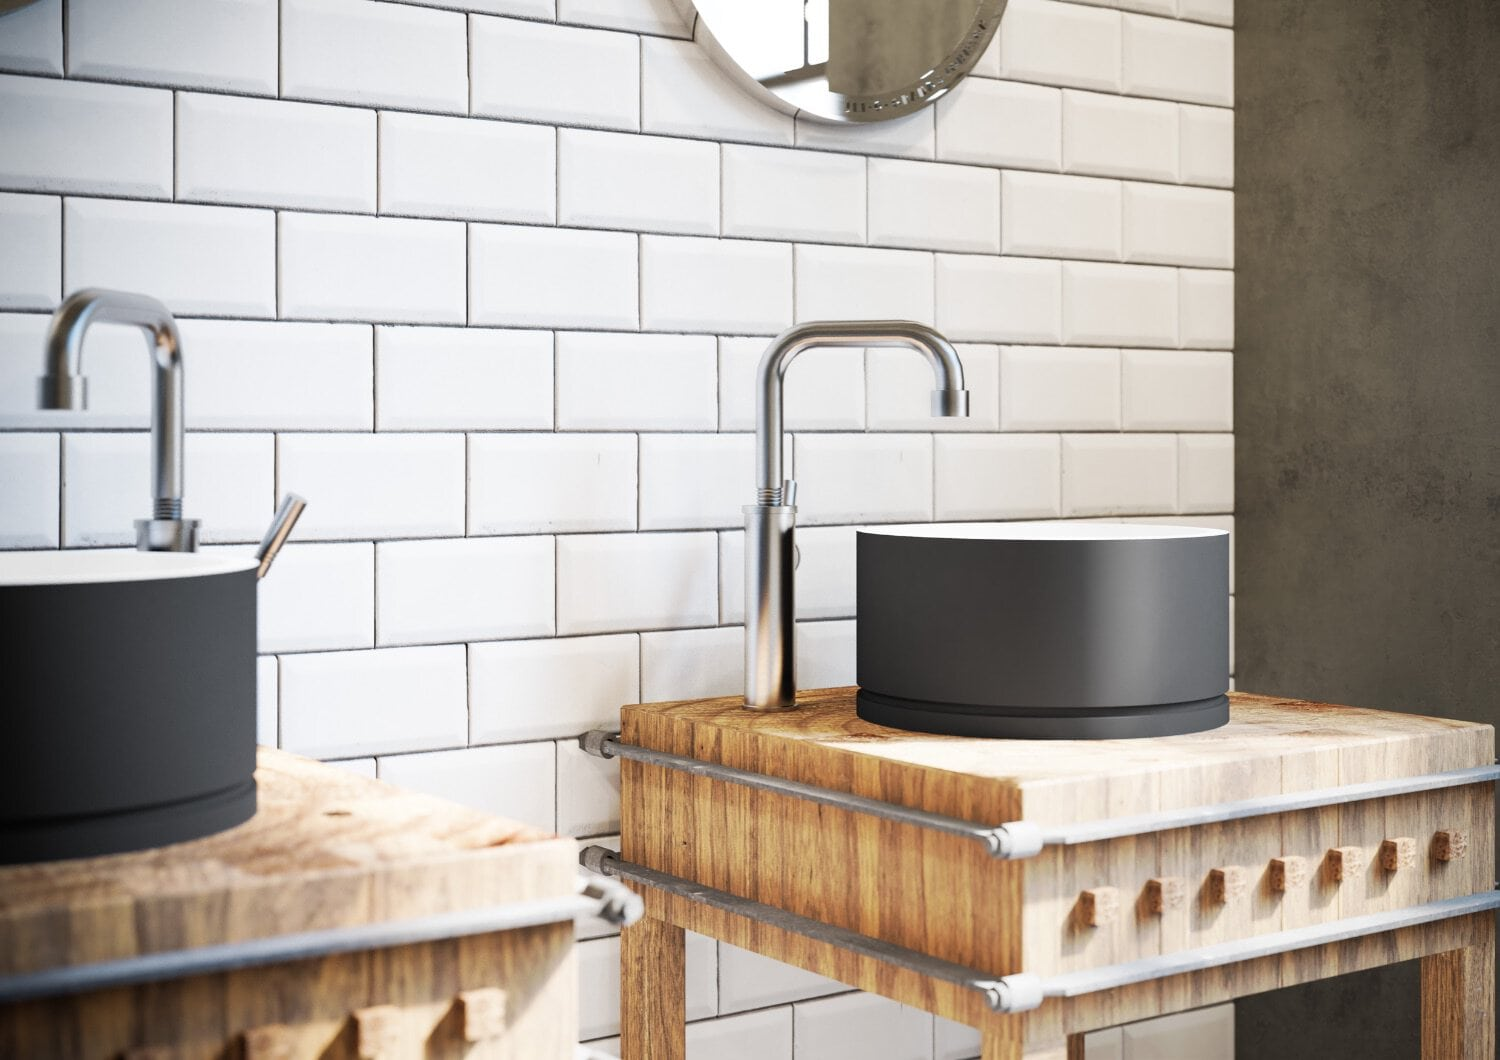 JEE-O Soho RAW basin and basin mixer, price upon request; available at Maison Kitchen & Bath.